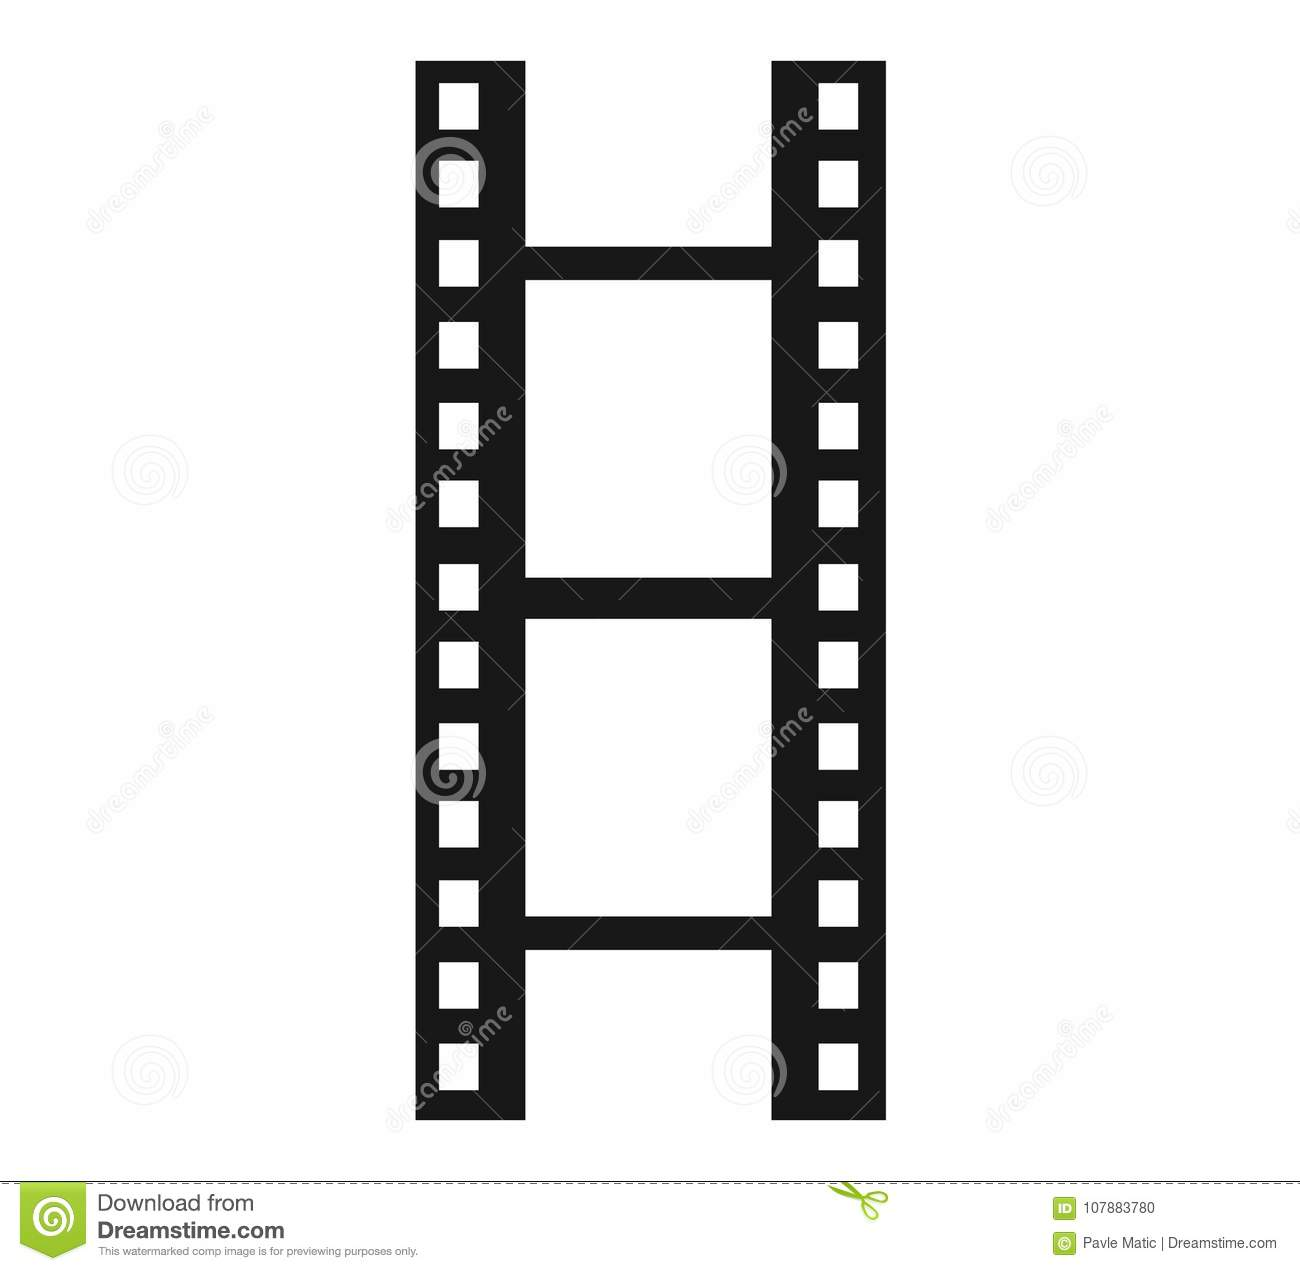 hight resolution of a simple clipart of a film reel or film strip done in a minimalist style